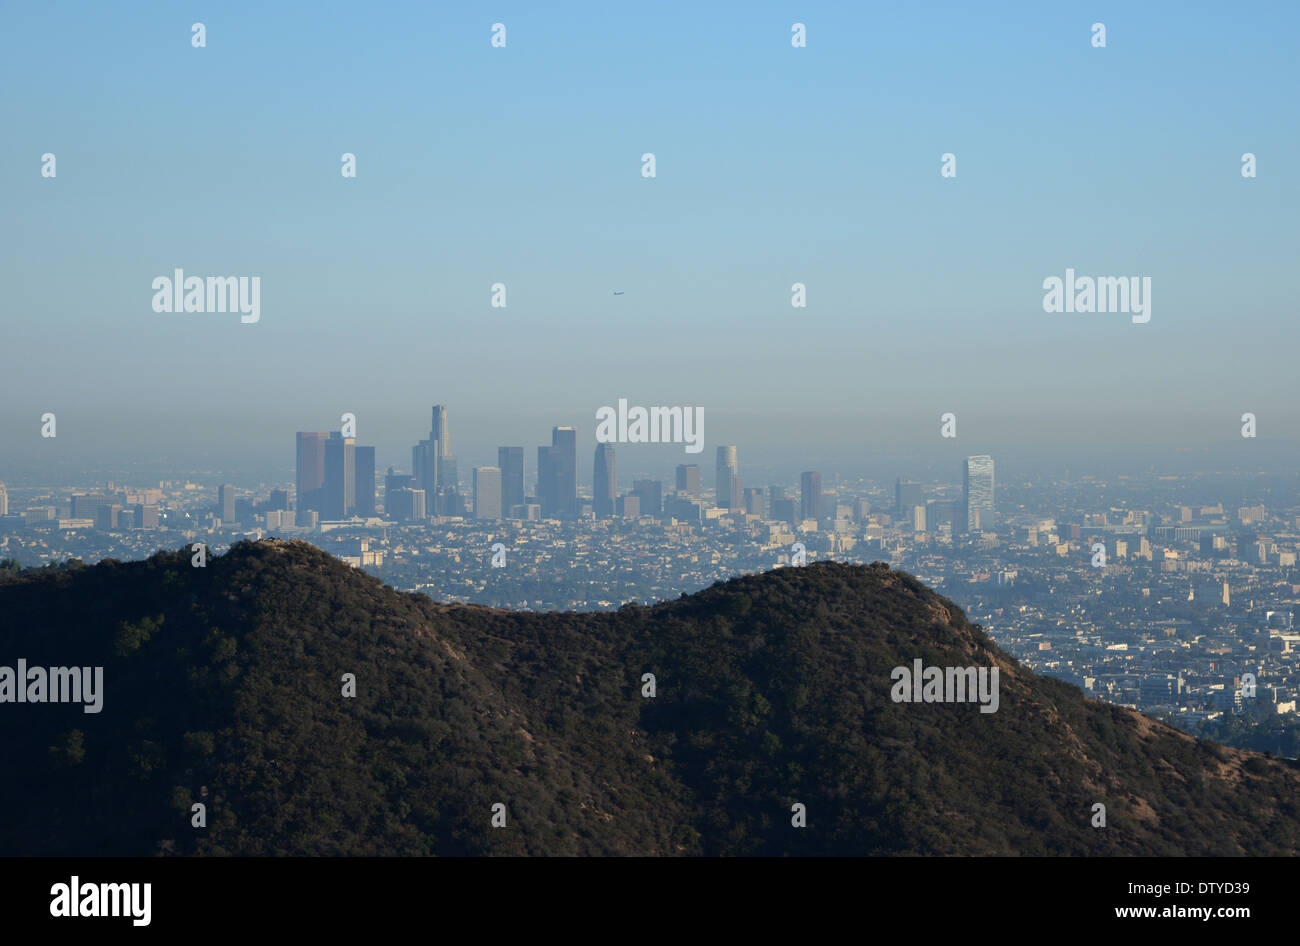 Downtown LA and its smog beneath a blue sky and heat shimmer seen from the Hollywood hills - Stock Image